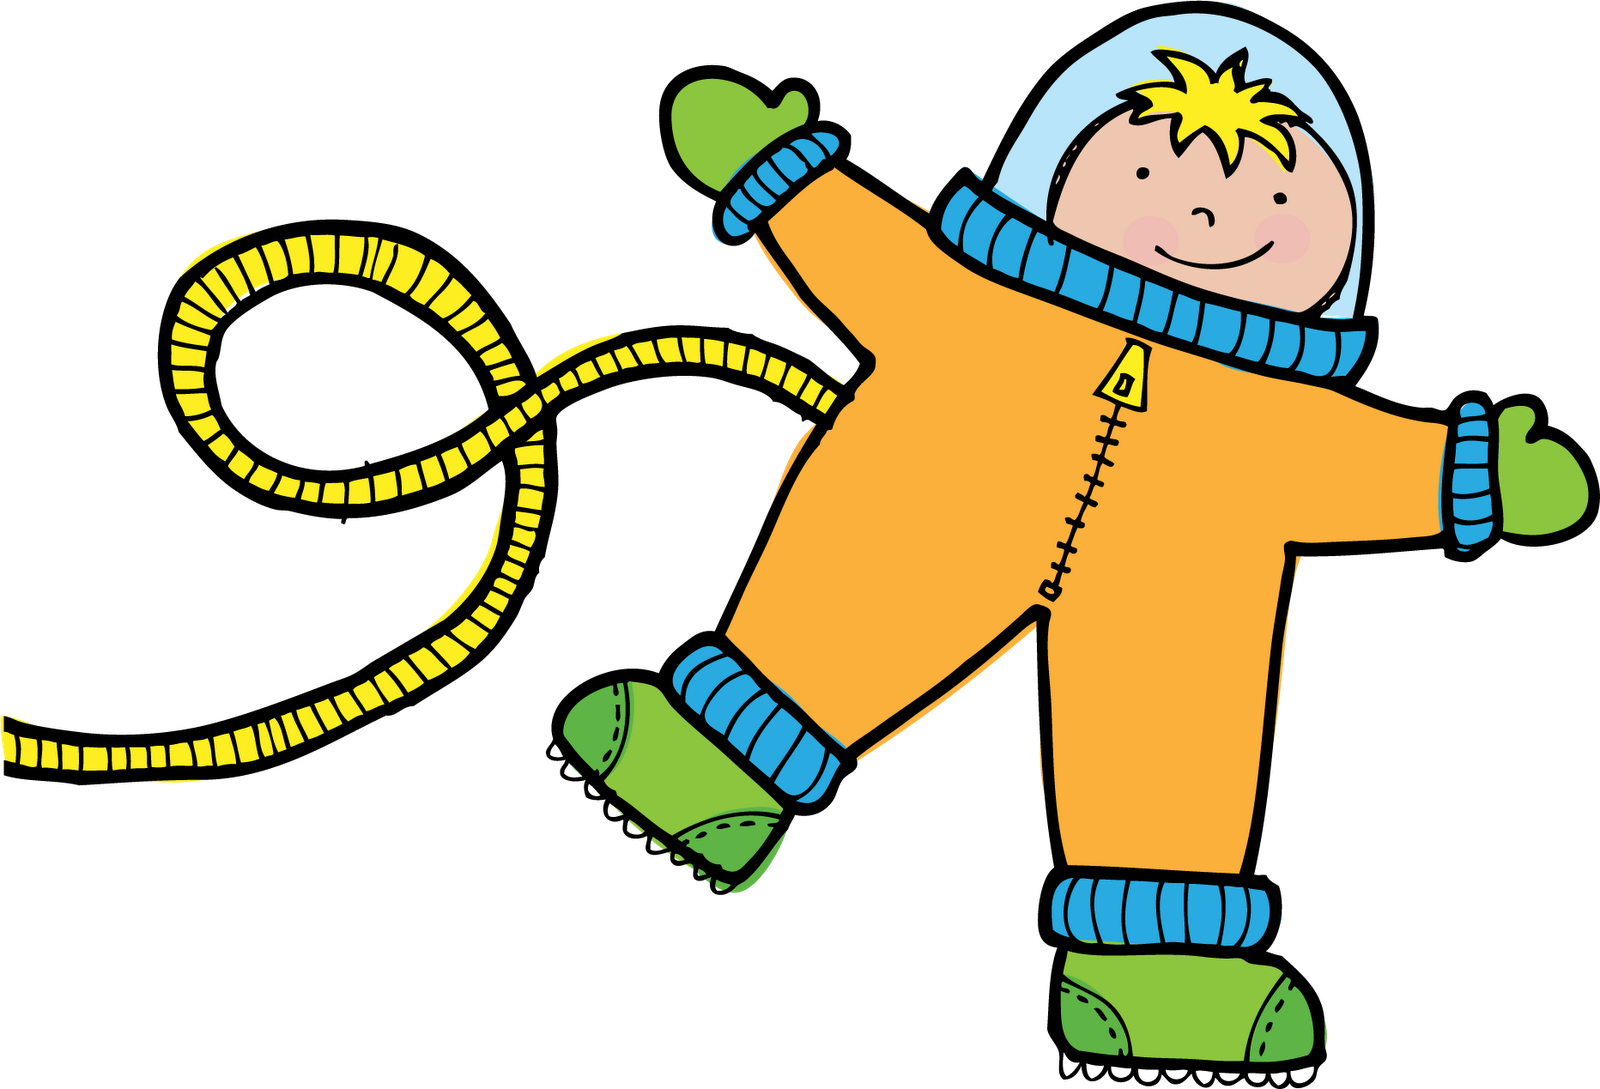 Kid with money clipart image royalty free Free Rocket Pictures For Kids, Download Free Clip Art, Free Clip Art ... image royalty free